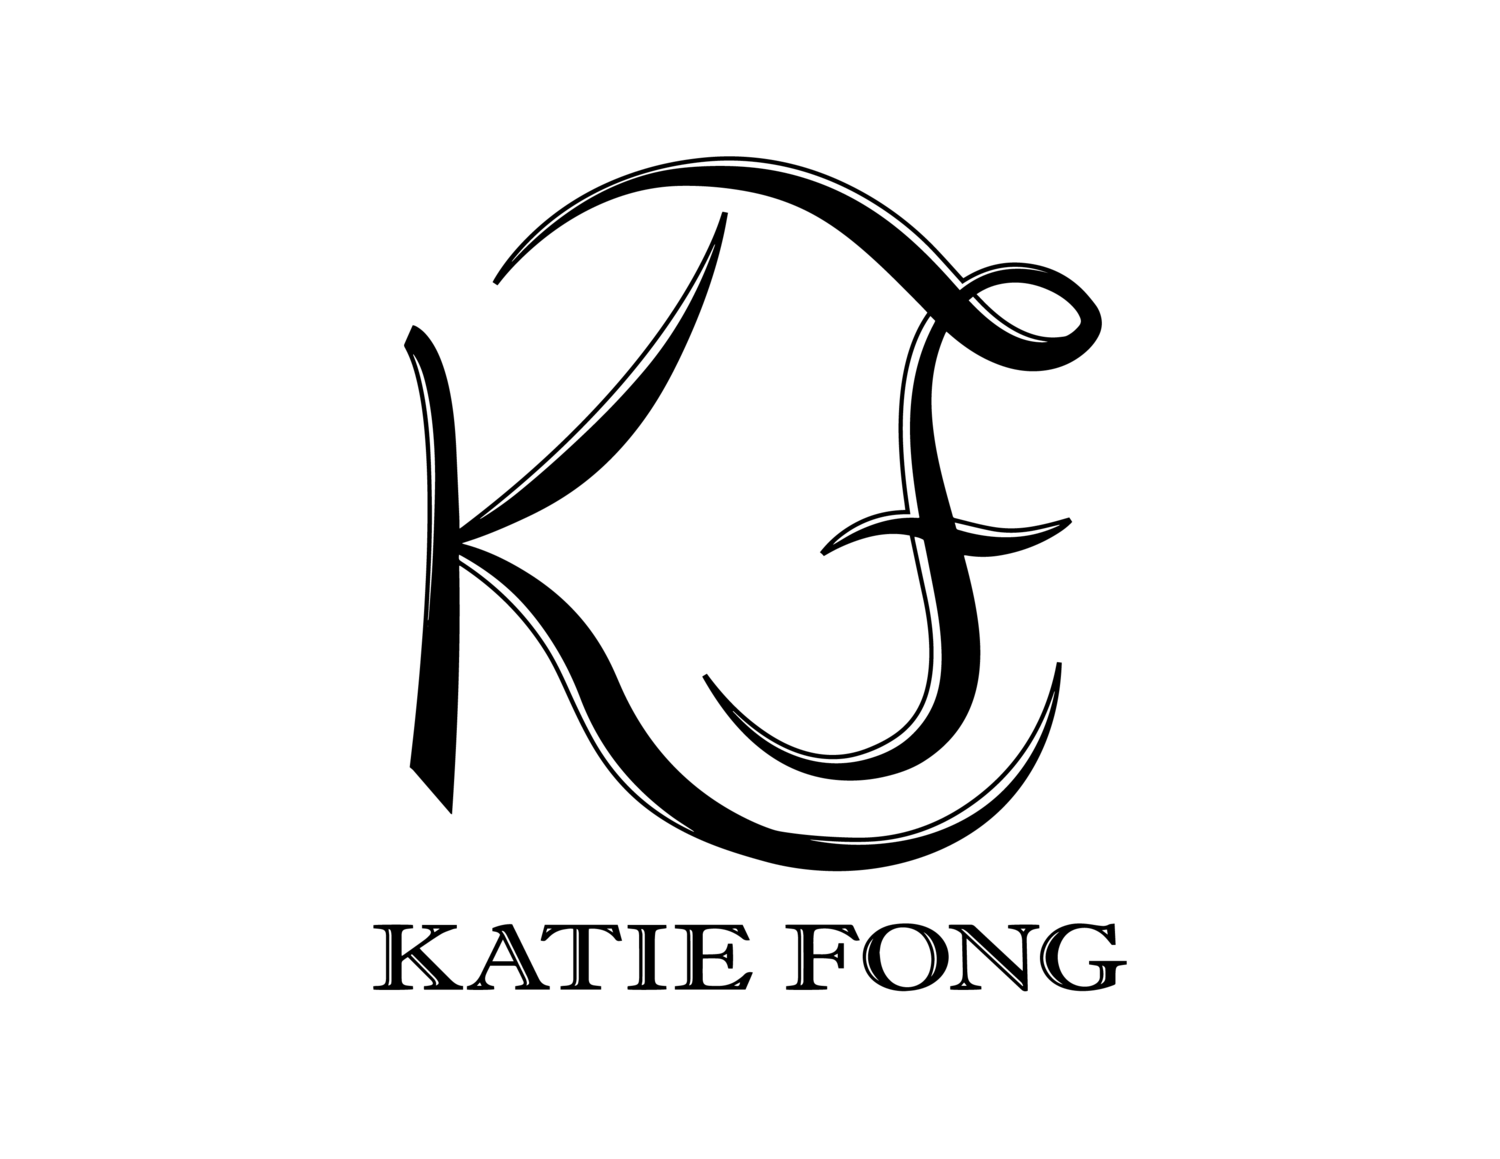 Katie Fong Collection